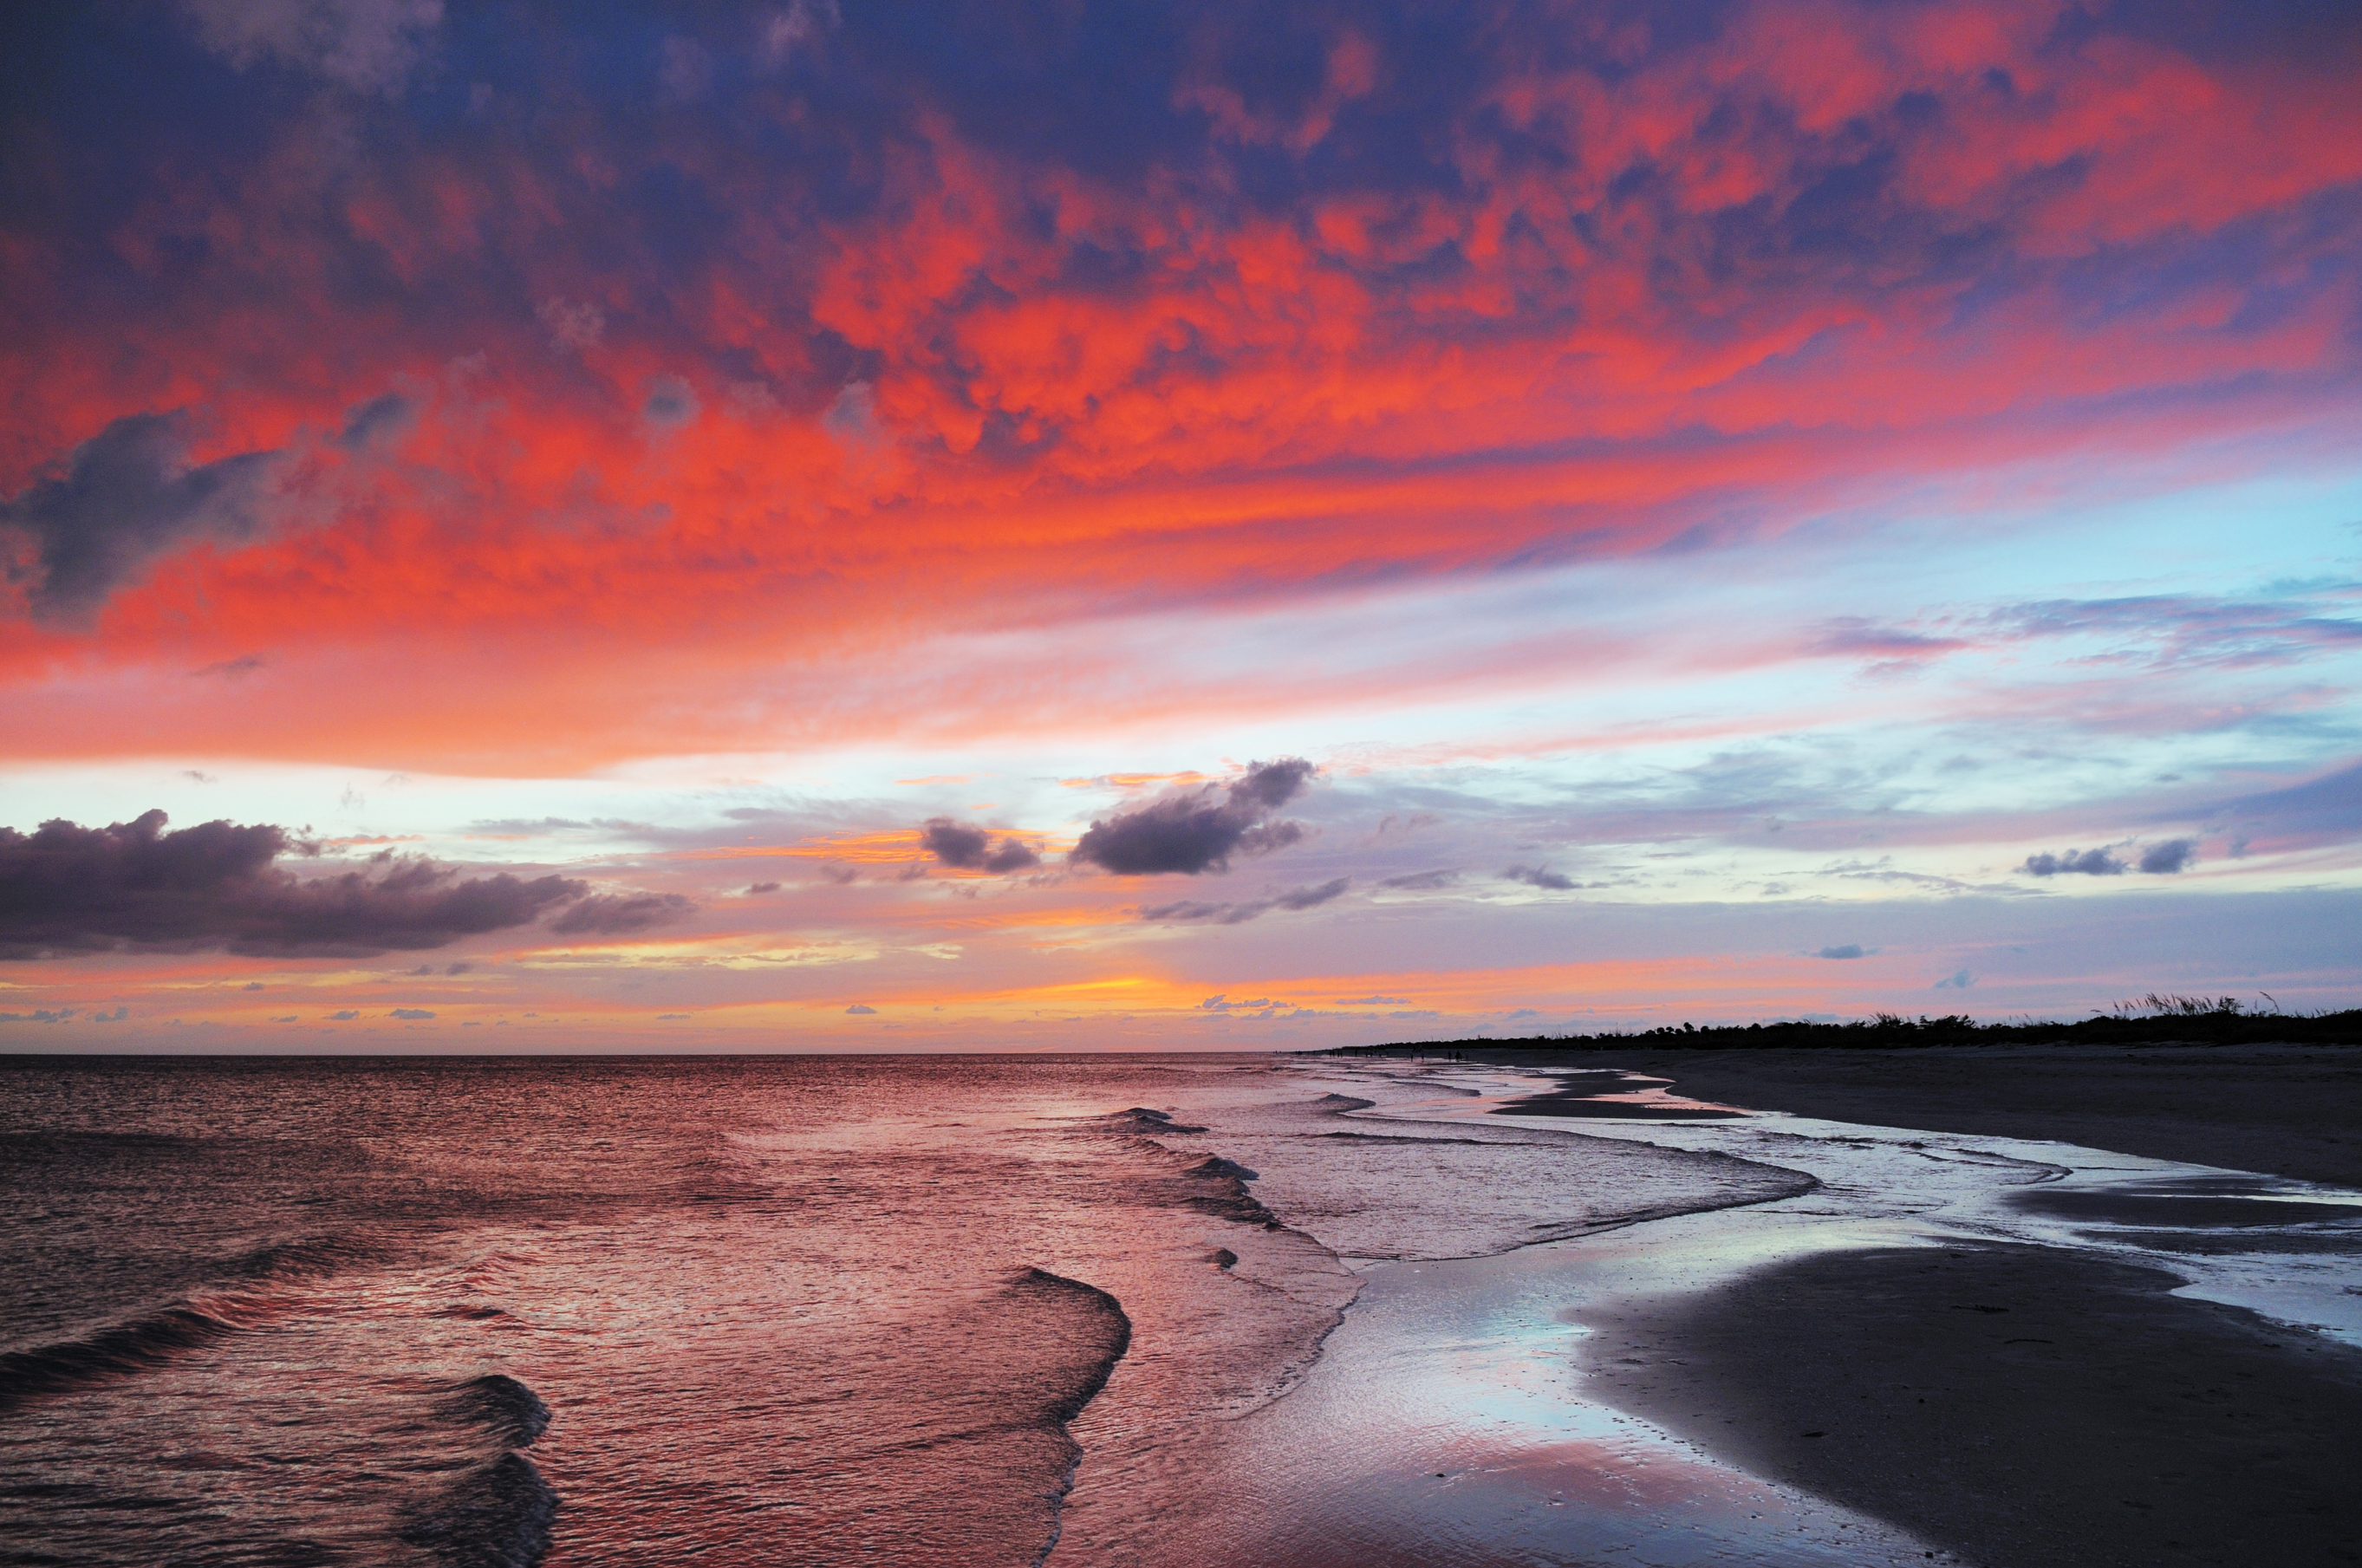 Dramatic Colorful Sunset Sky At Bowman Beach Sanibel